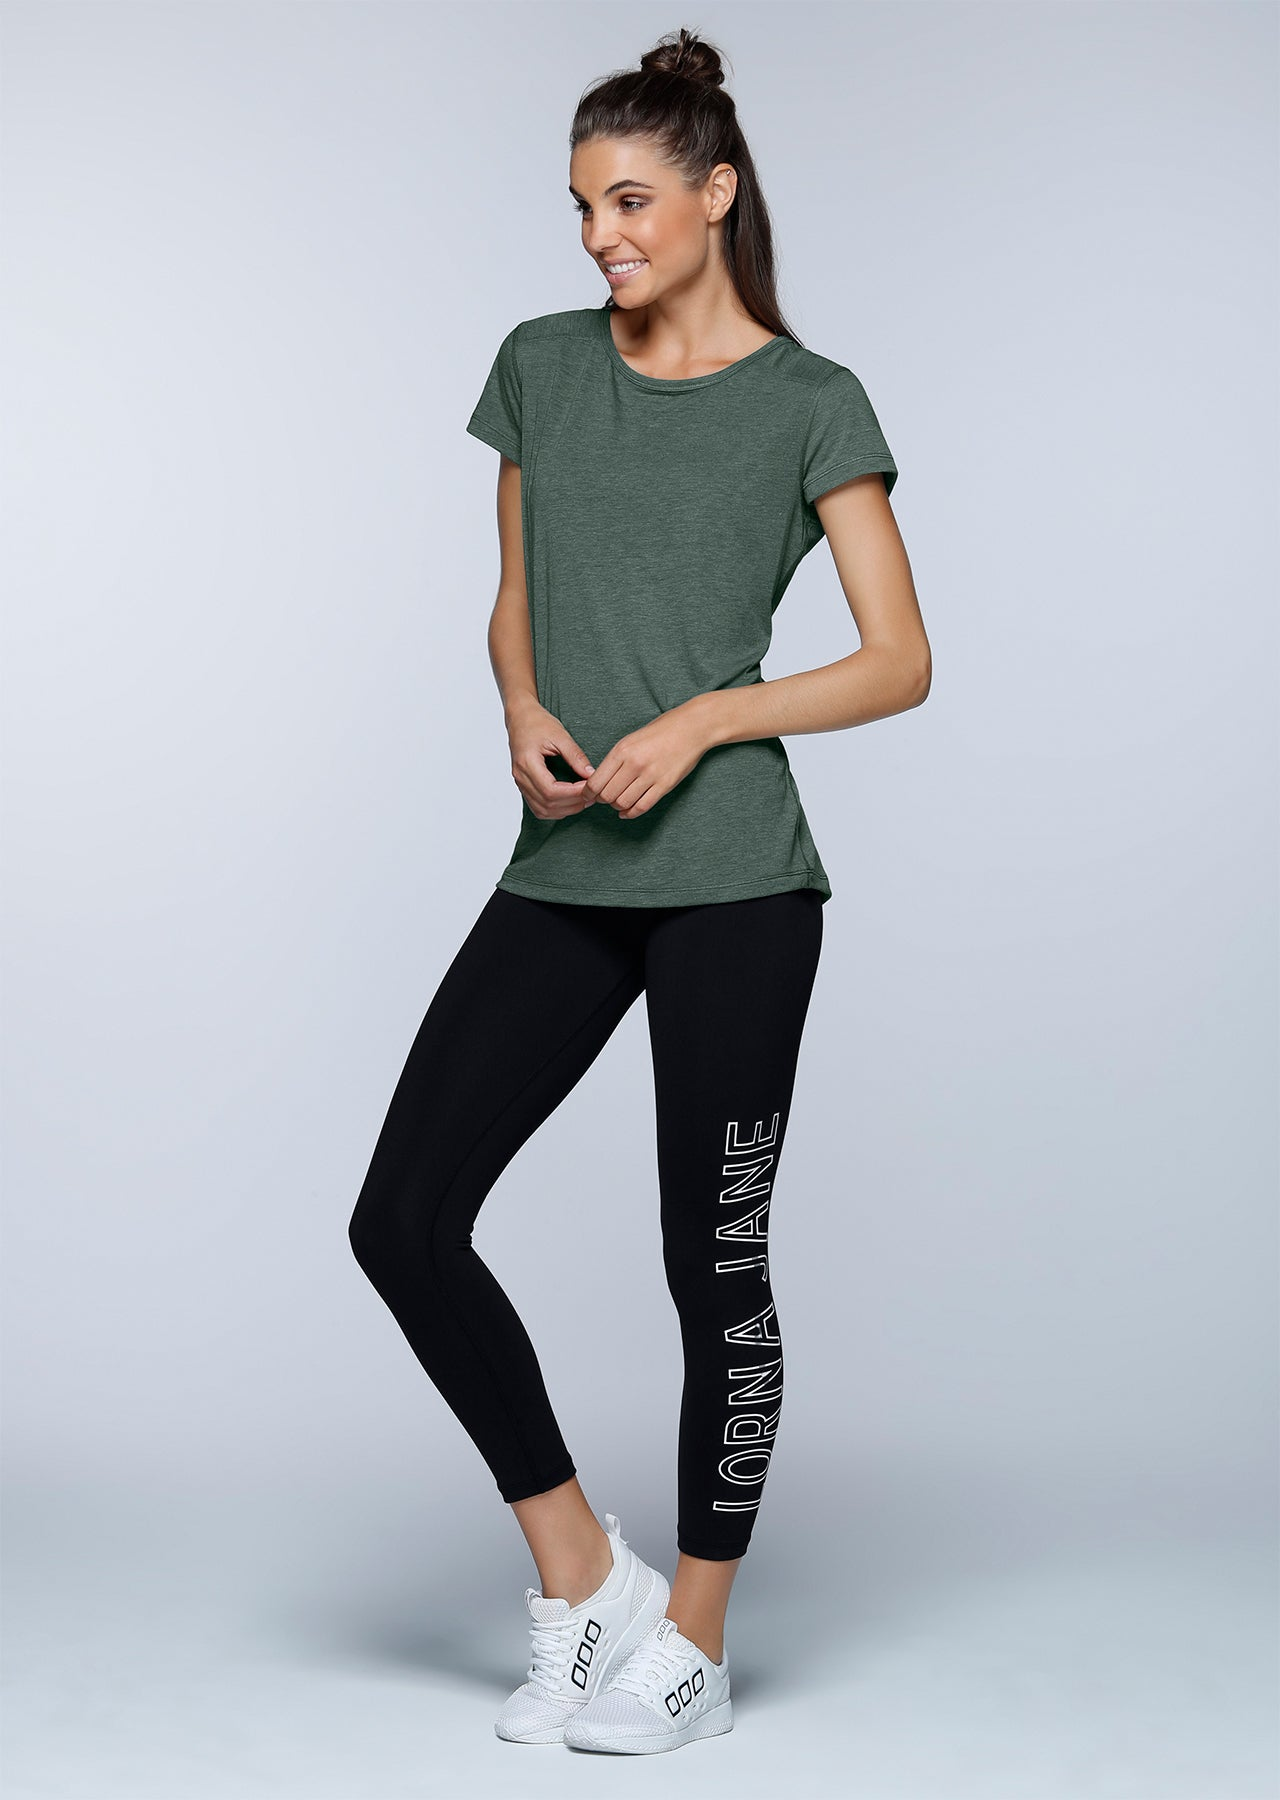 Move Freely Active Tee